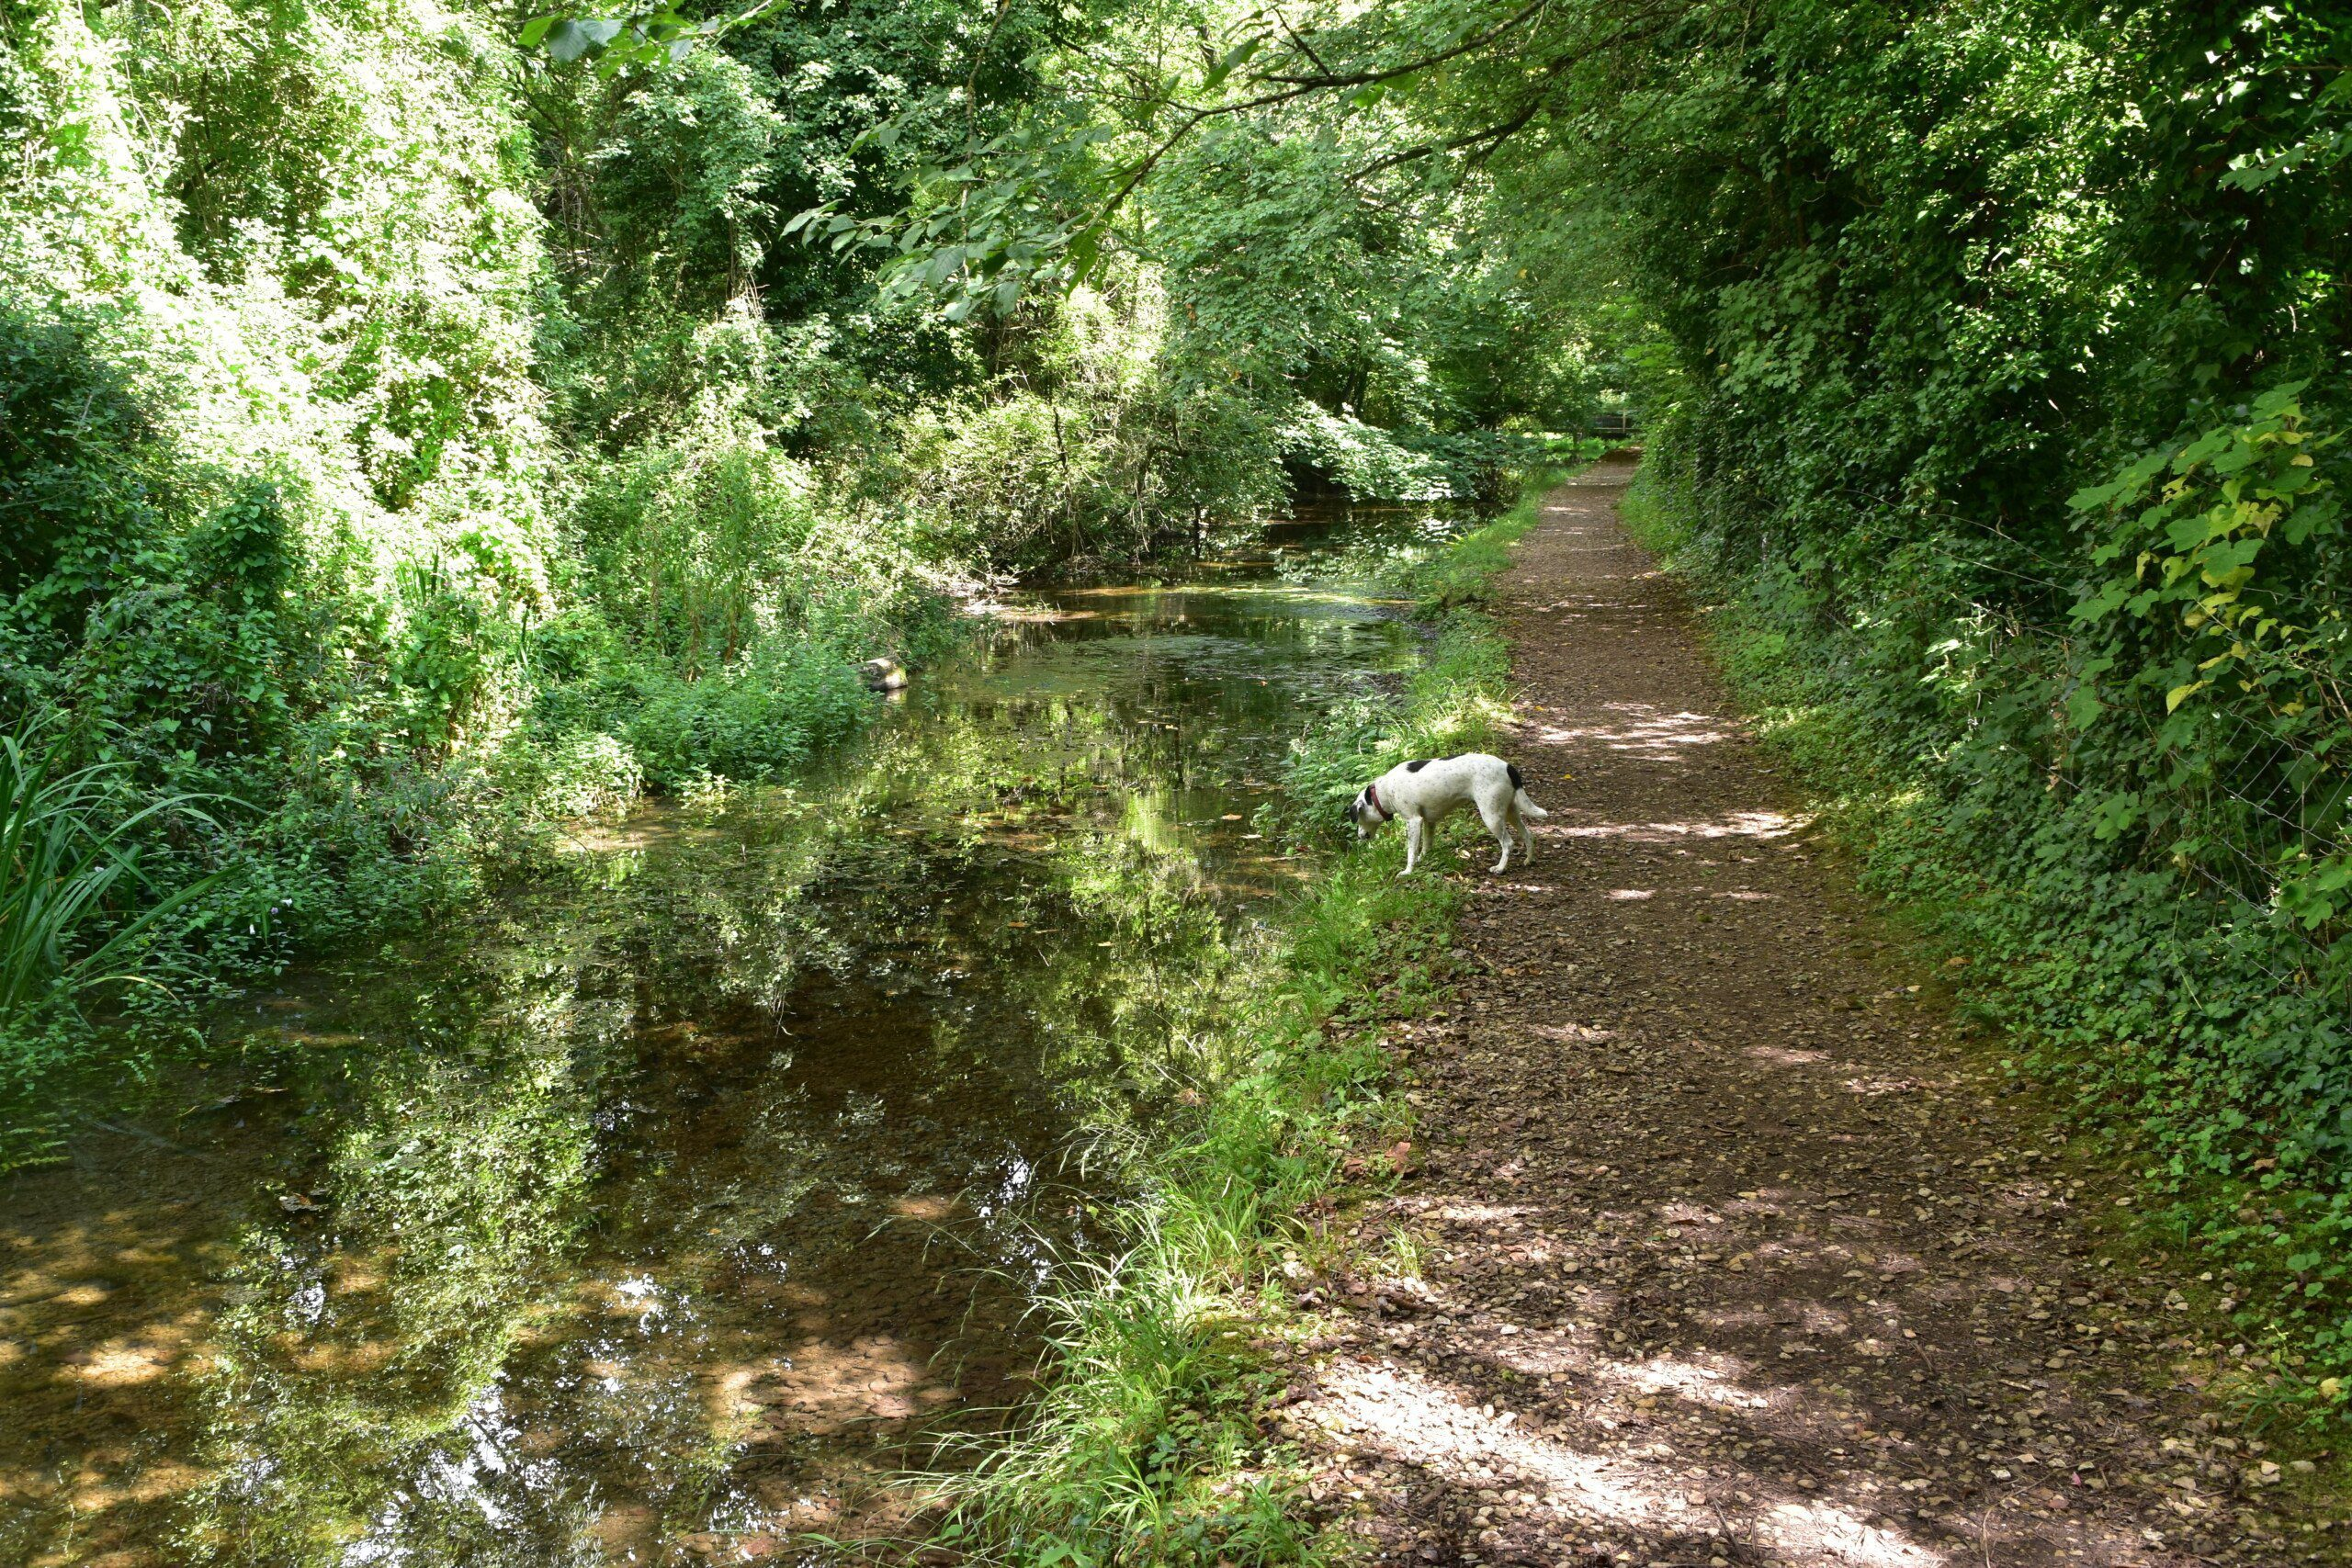 Daisy the Dog looks into a small, leaf-shaded river